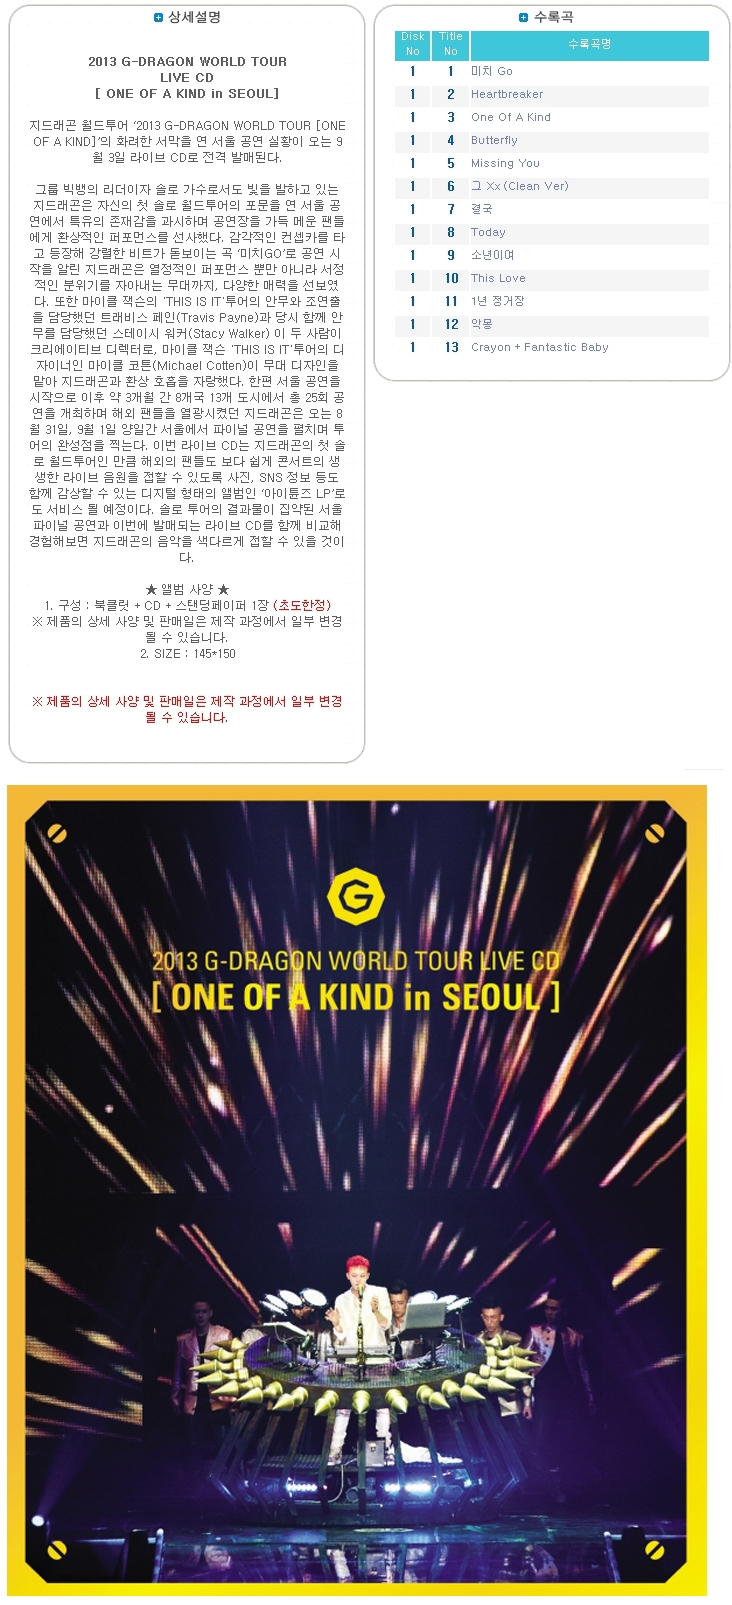 G-Dragon,Big Bang,2013 G-DRAGON WORLD TOUR LIVE CD[ONE OF A KIND in SEOUL]